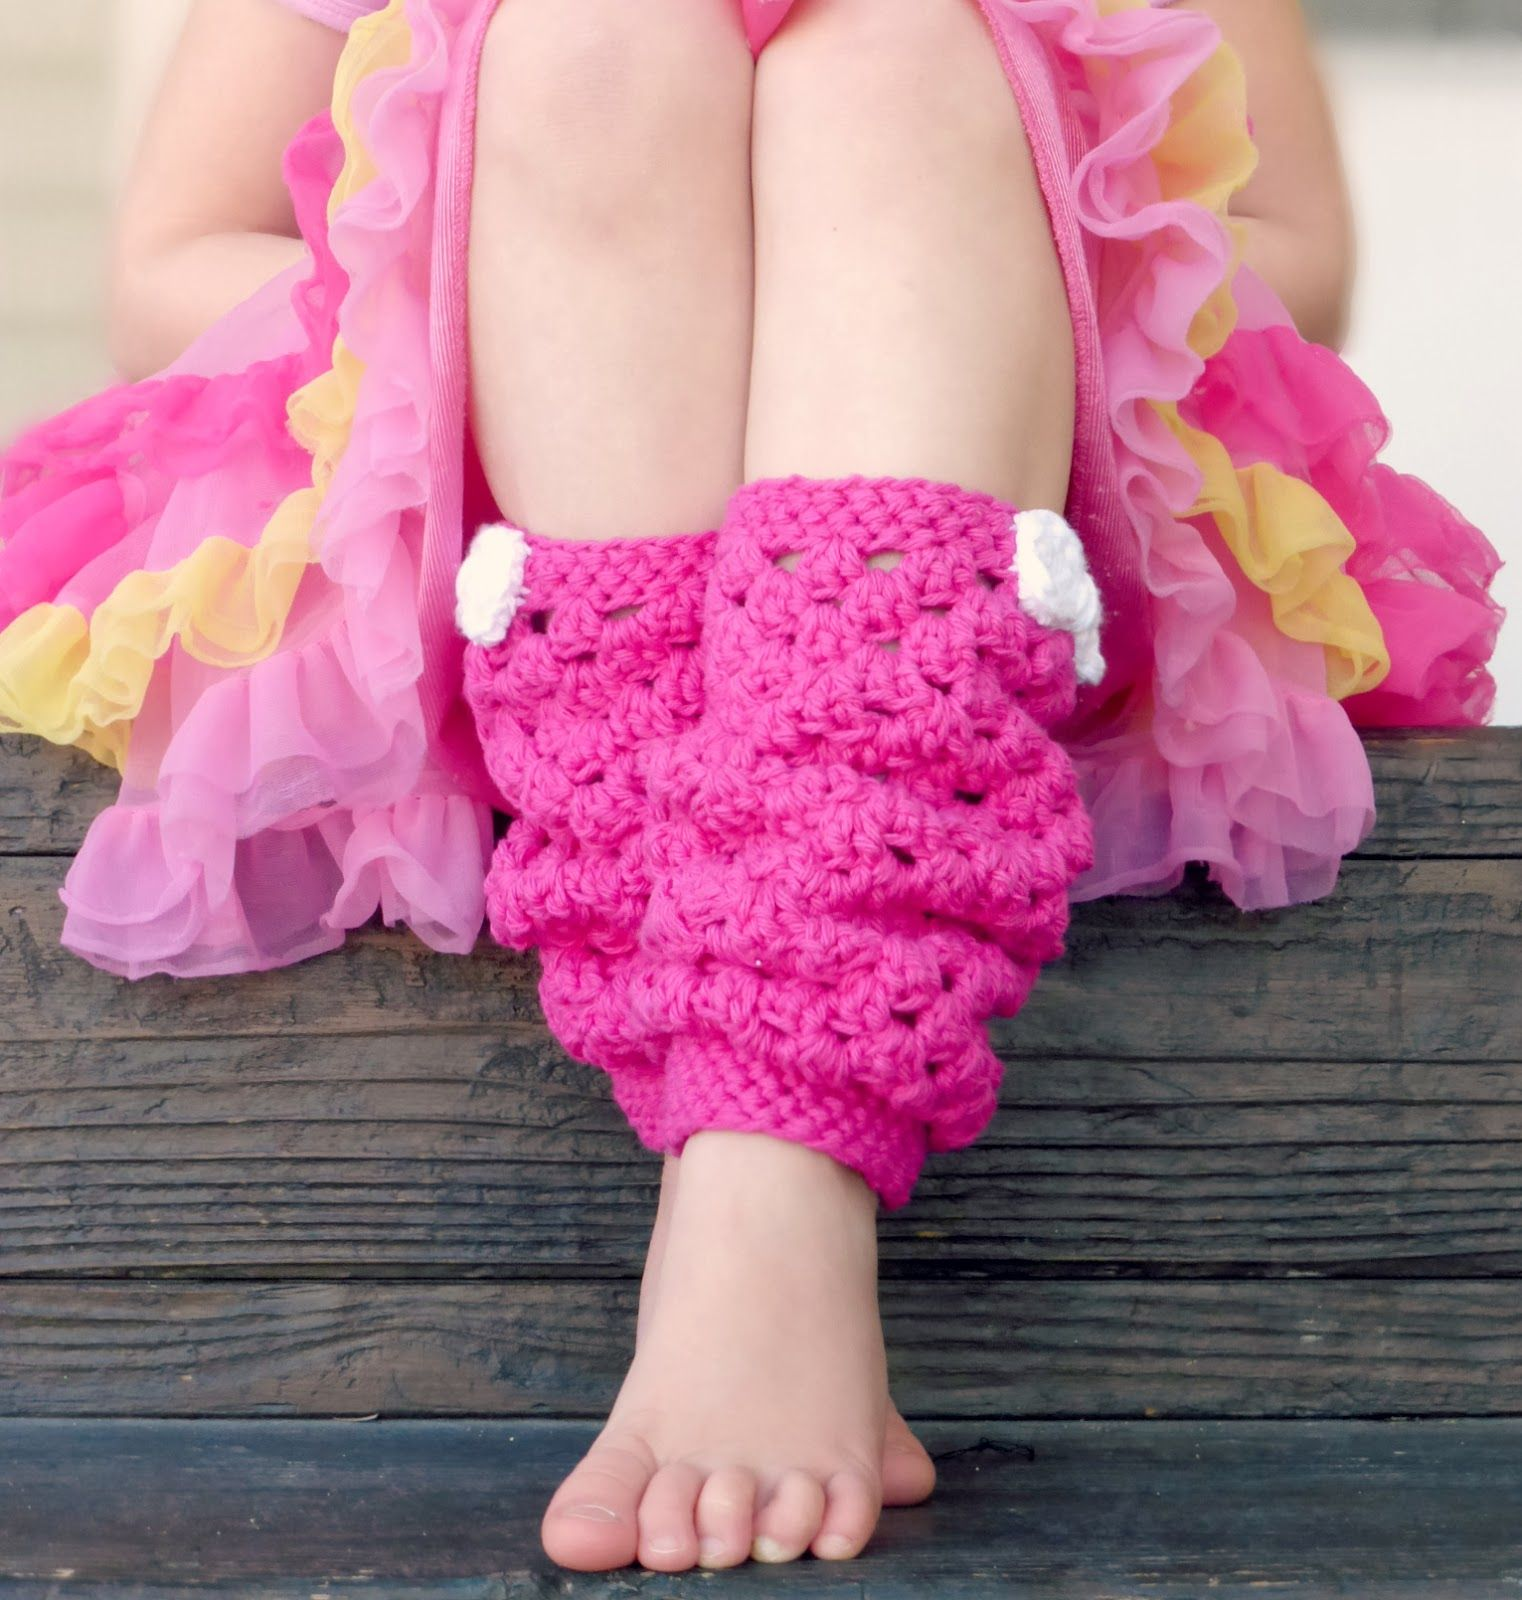 crochet leg warmers | Girly leg warmers free crochet pattern, and a ...